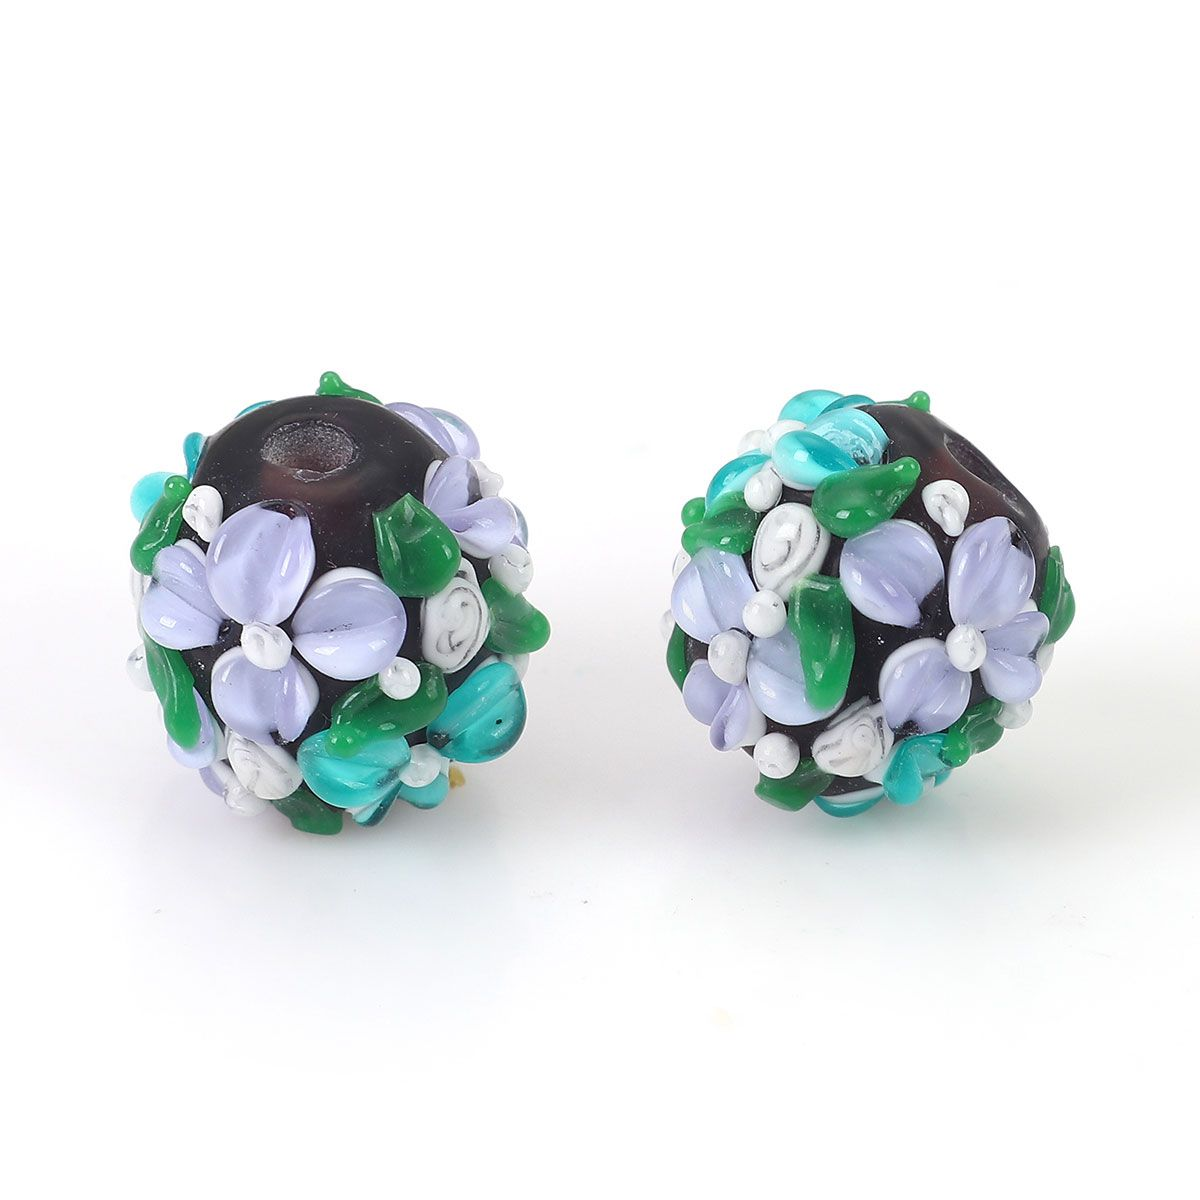 Lampwork Glass Flower Beads for Jewelry Making, Purple Orchids with Leaves